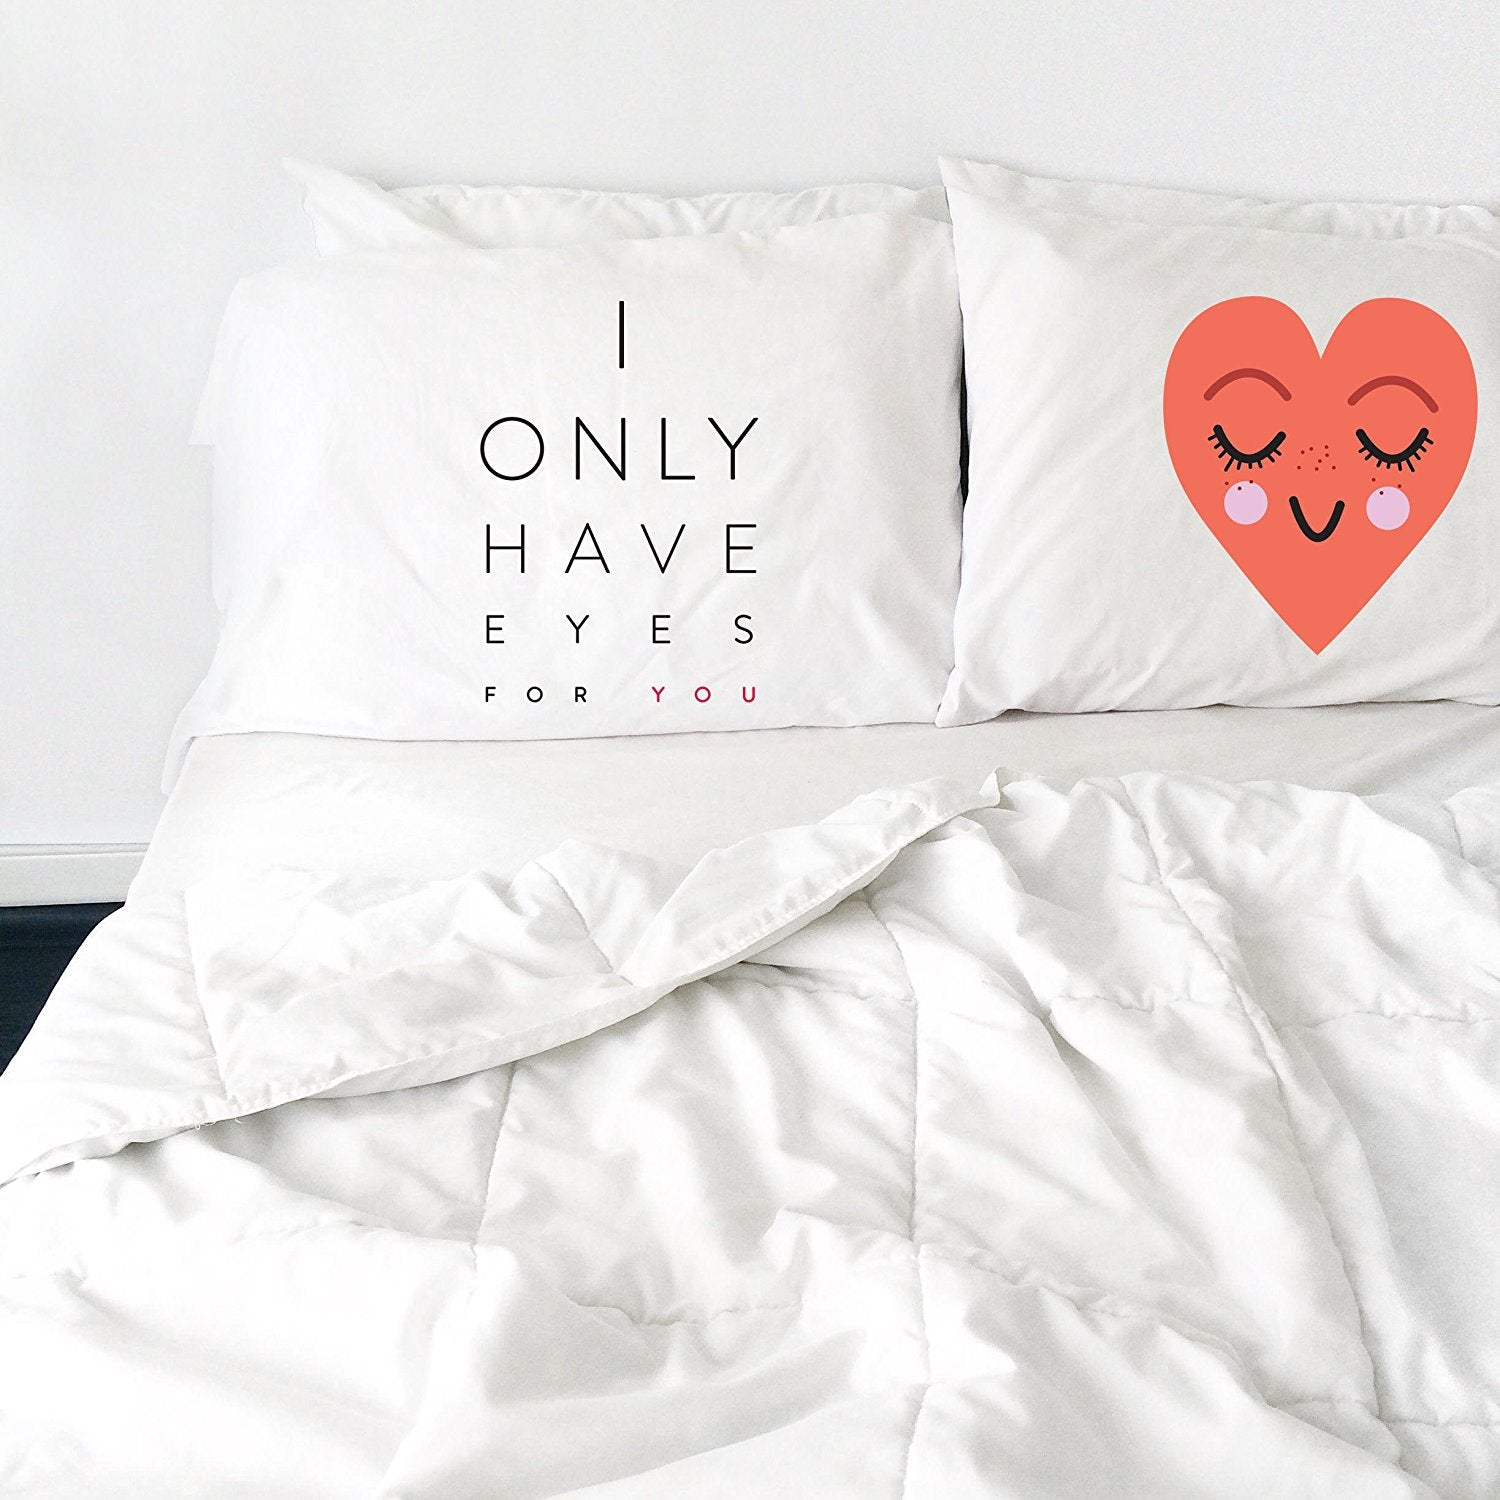 I Only Have Eyes For You Heart Pillowcase Set (Two 20x30 Standard Pillow Case) Couples Gifts For Her - Wedding Decoration - Anniversary Gift Birthday Present